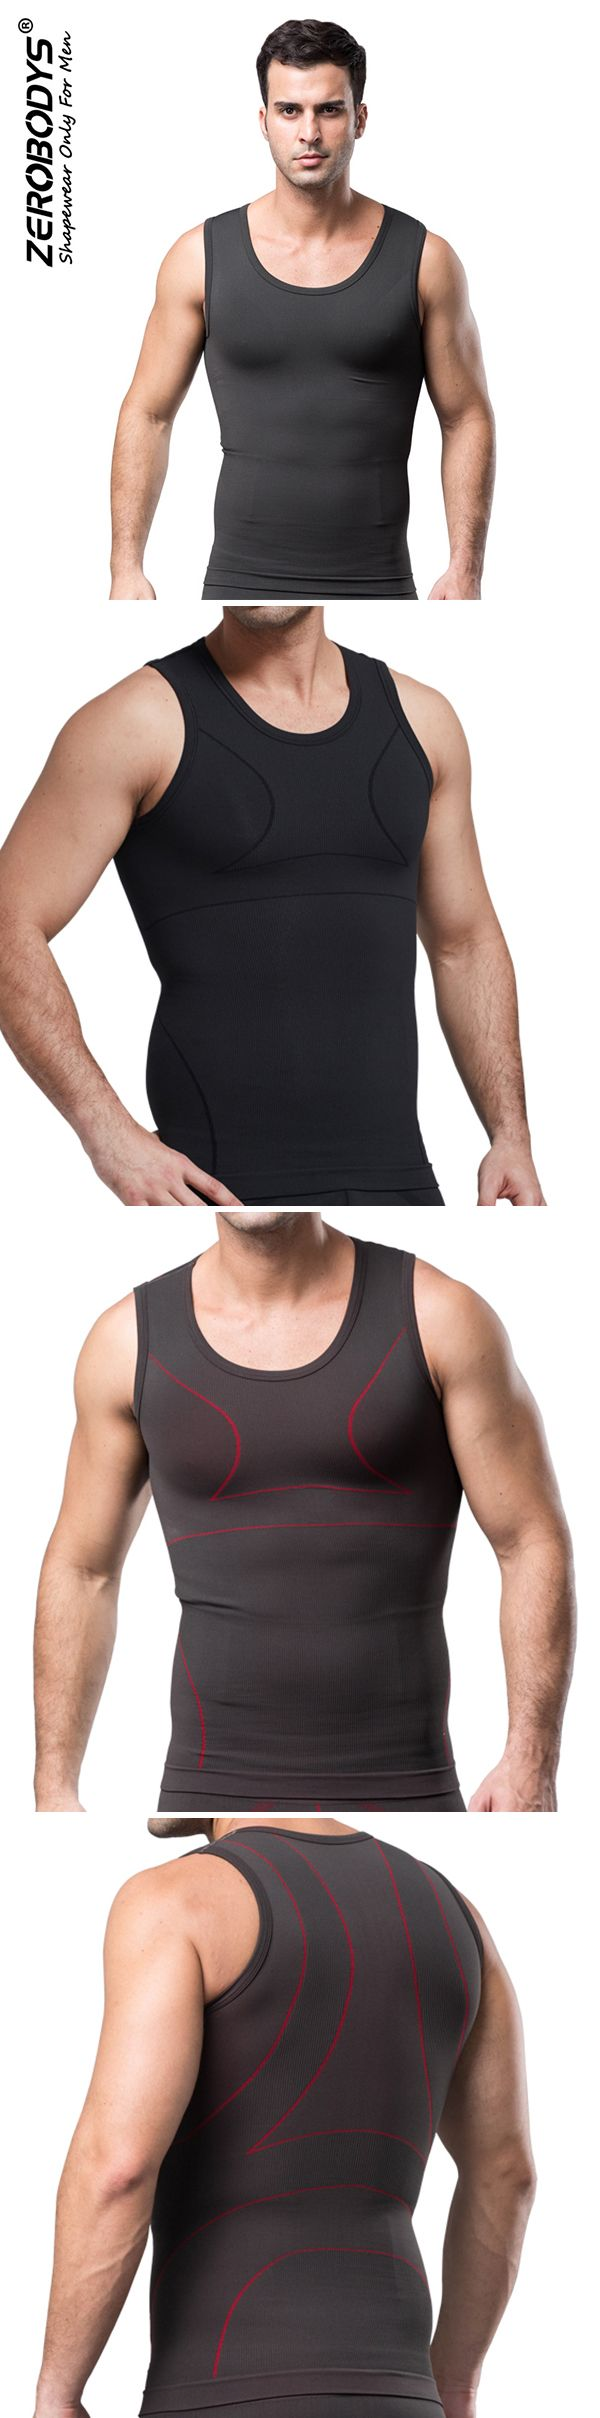 Gym Outfit: Mens Body Shaping Tank Tops: High Elastic / Fat Burning